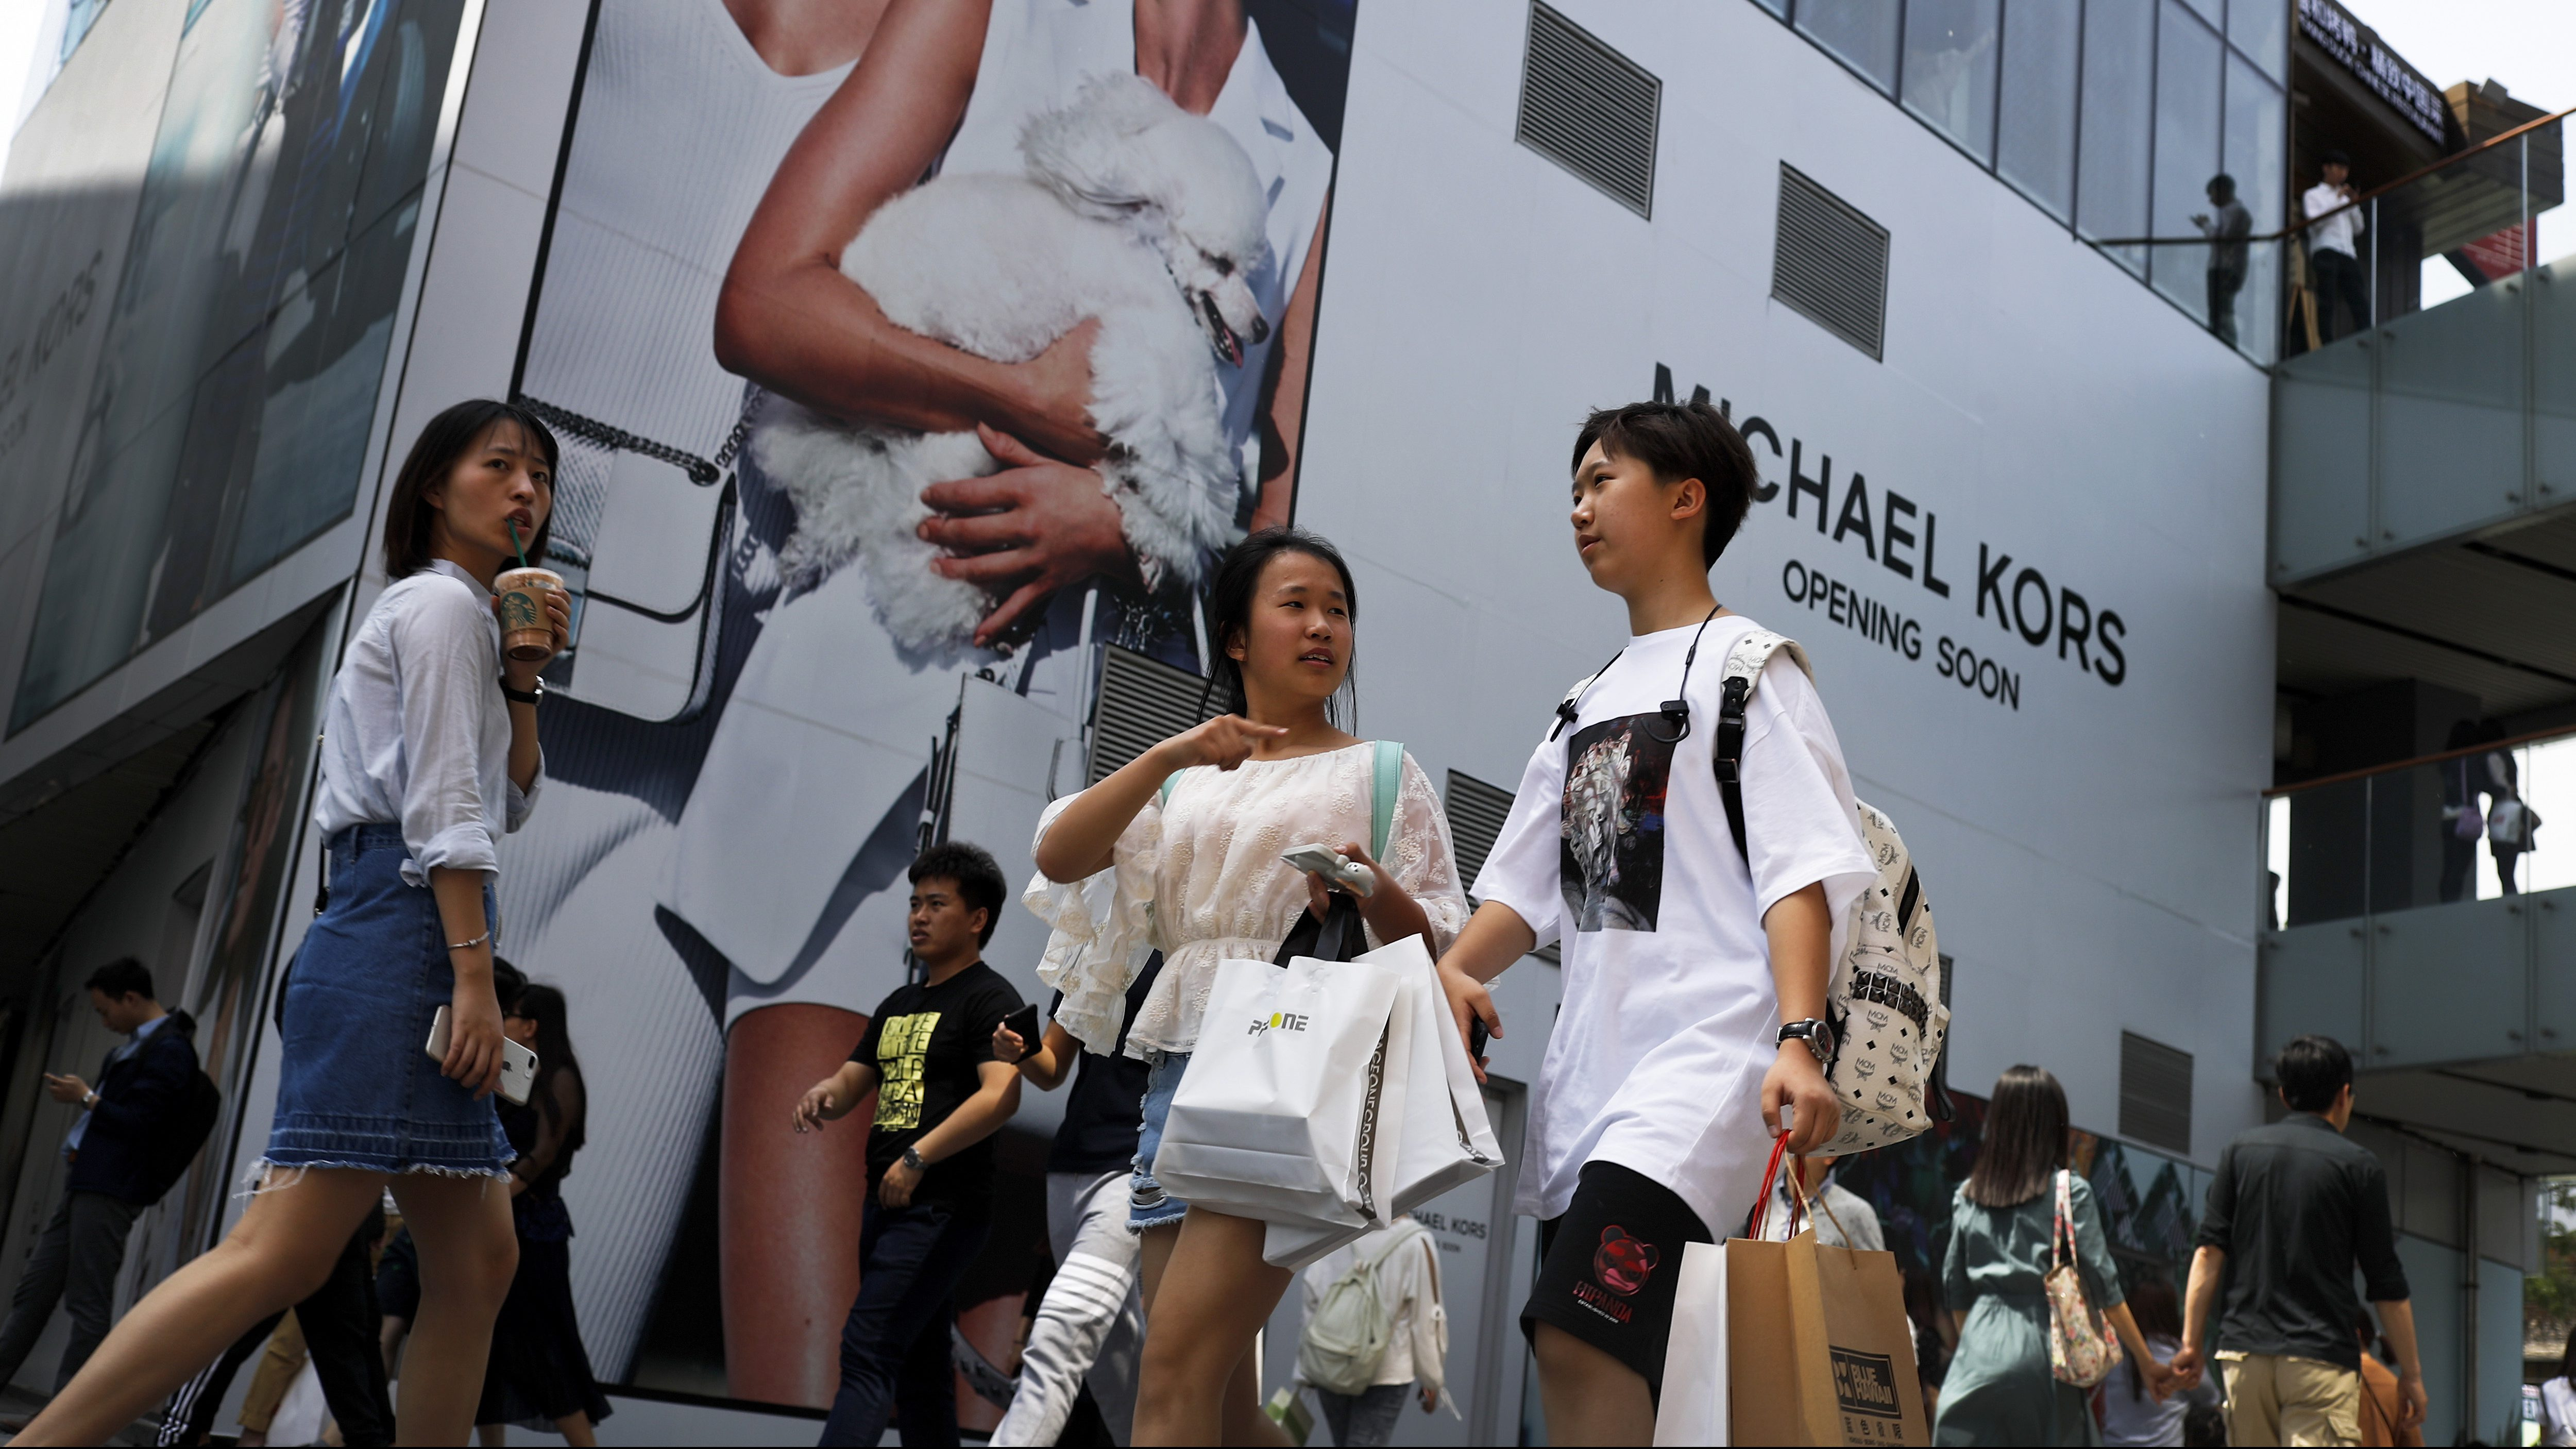 Shoppers walk through the capital city's popular shopping mall in Beijing, Sunday, April 30, 2017. Growth in China's manufacturing sector slowed in April, official data showed Sunday, pointing to an unsteady recovery in the world's second-largest economy. (AP Photo/Andy Wong)